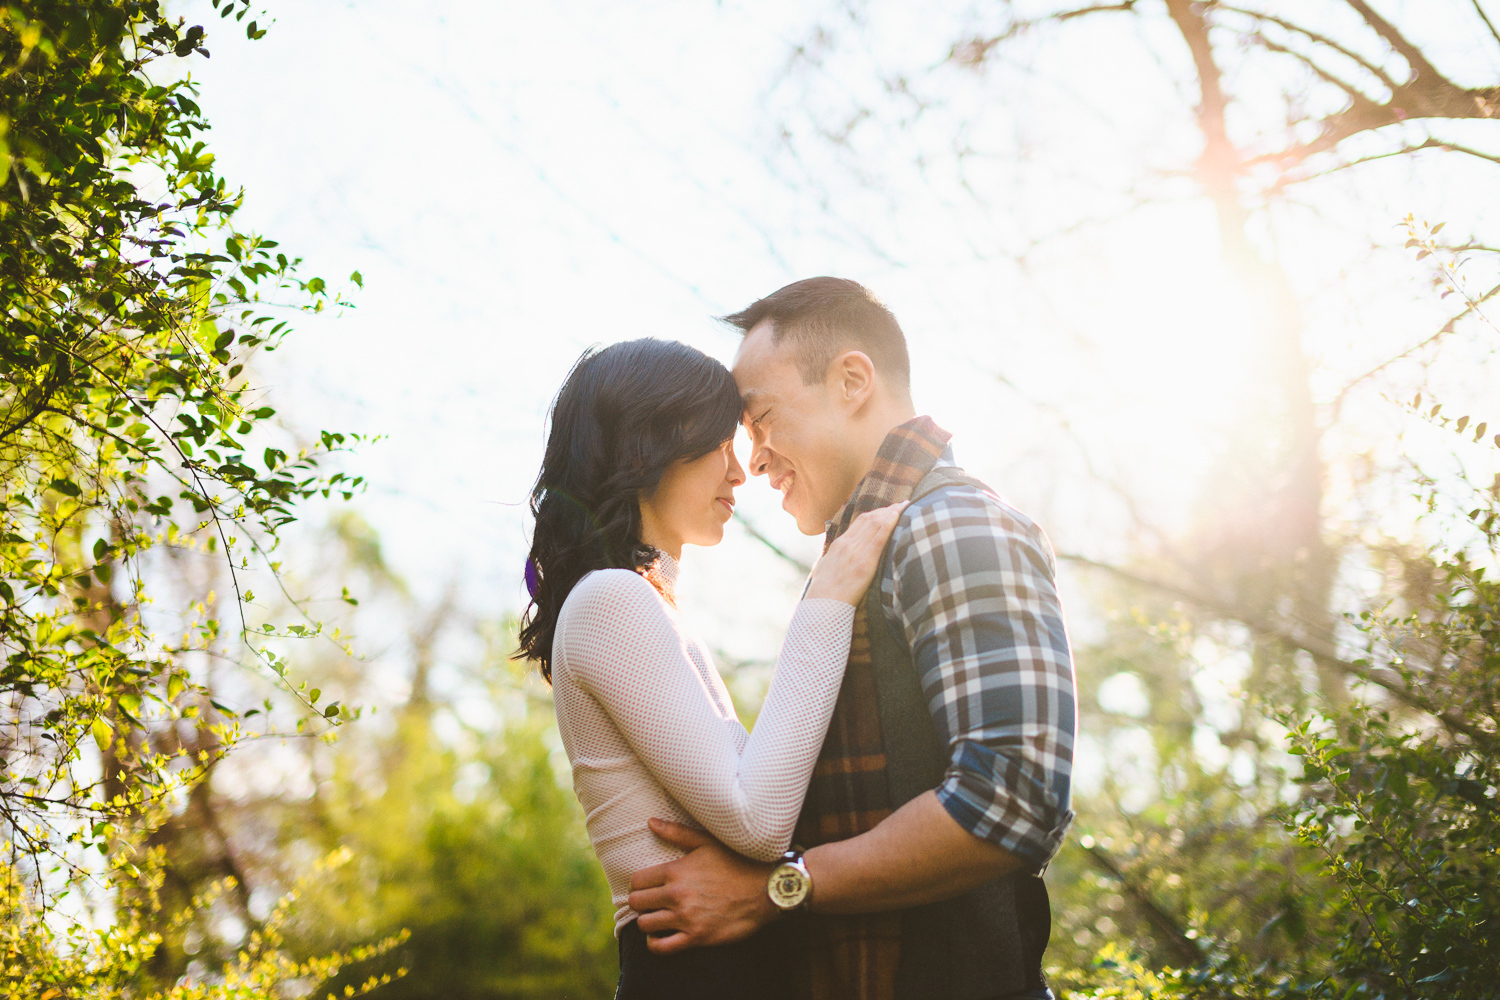 001 - great shiplock park engagement session richmond virginia nathan mitchell photography.jpg